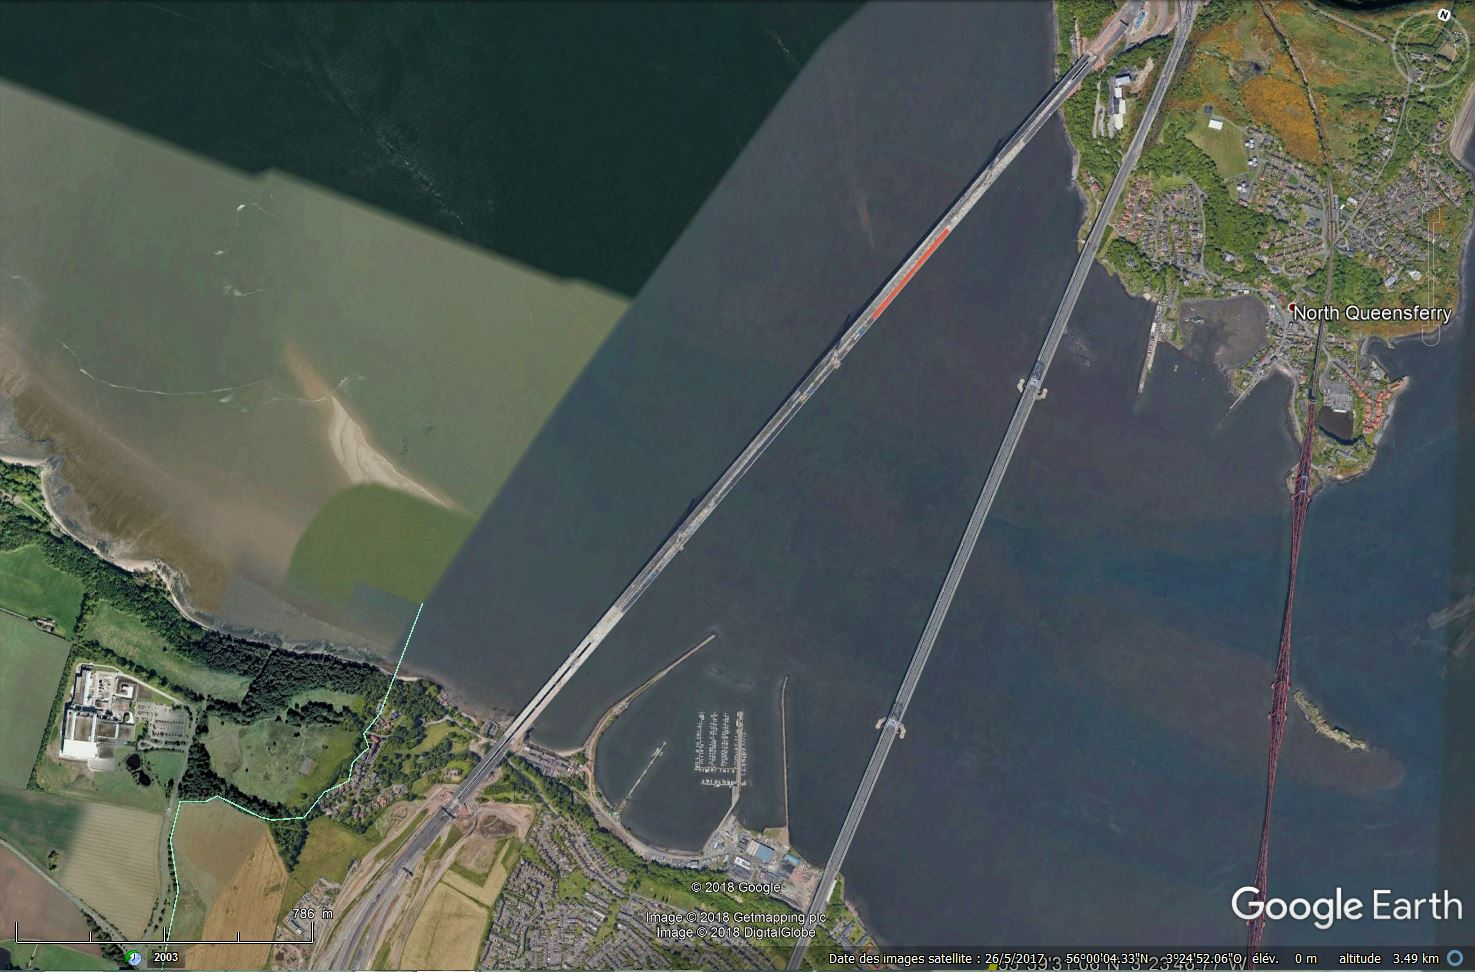 [Désormais visible sur Google-Earth] - Le 3ème pont de Queensferry en Ecosse (Queensferry Crossing)) Tsge_105